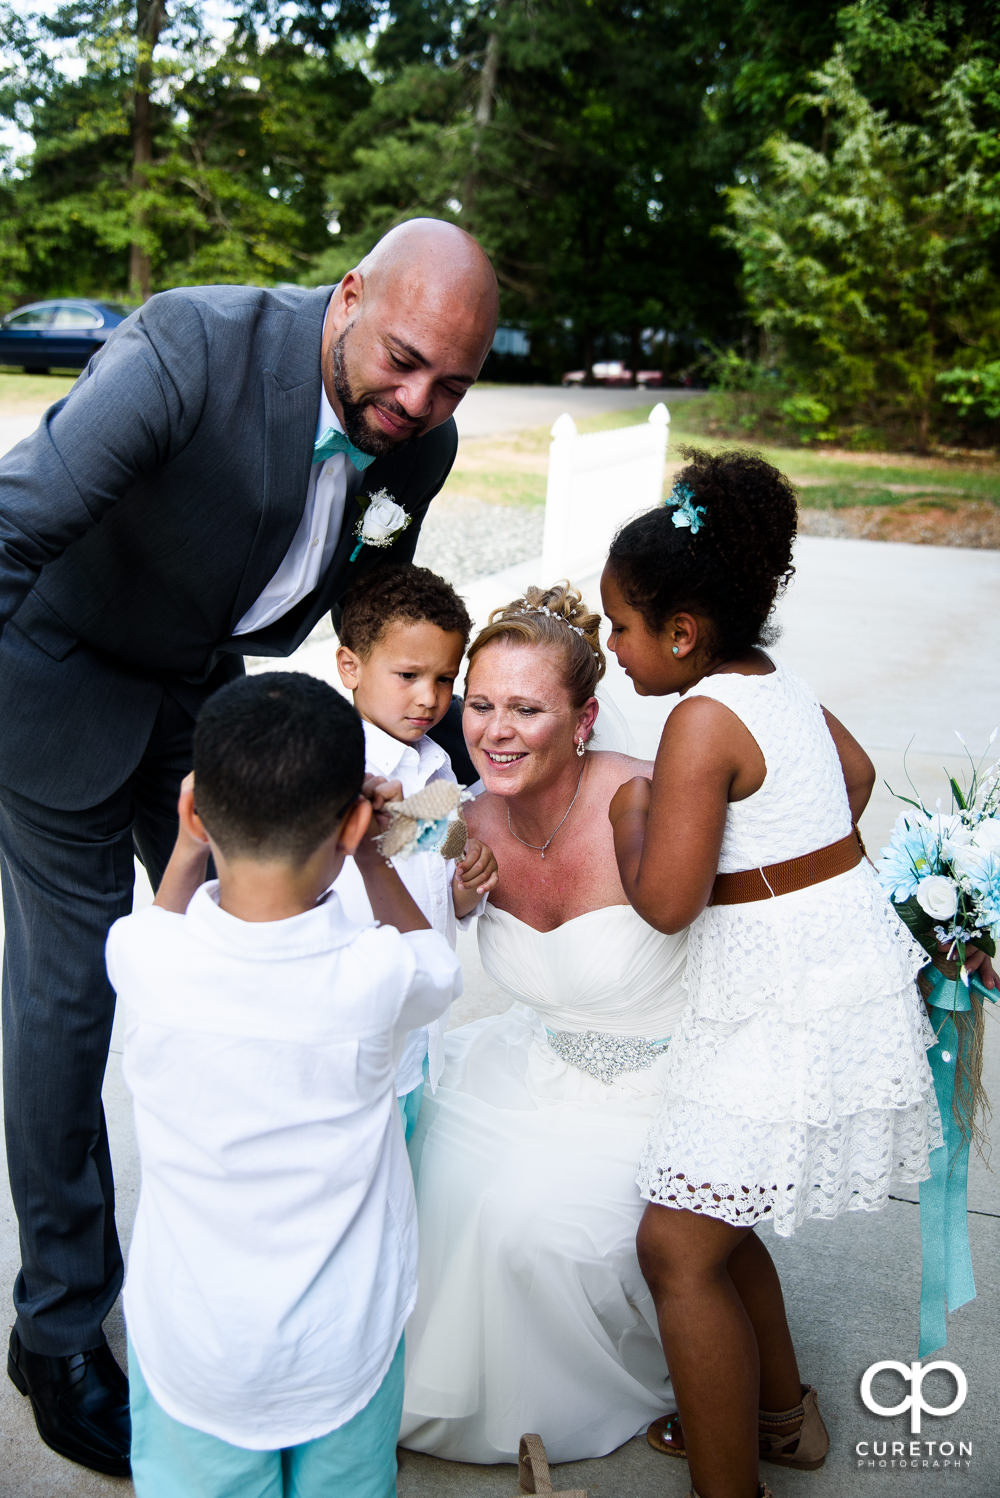 Bride and groom celebrating with their children after their wedding.